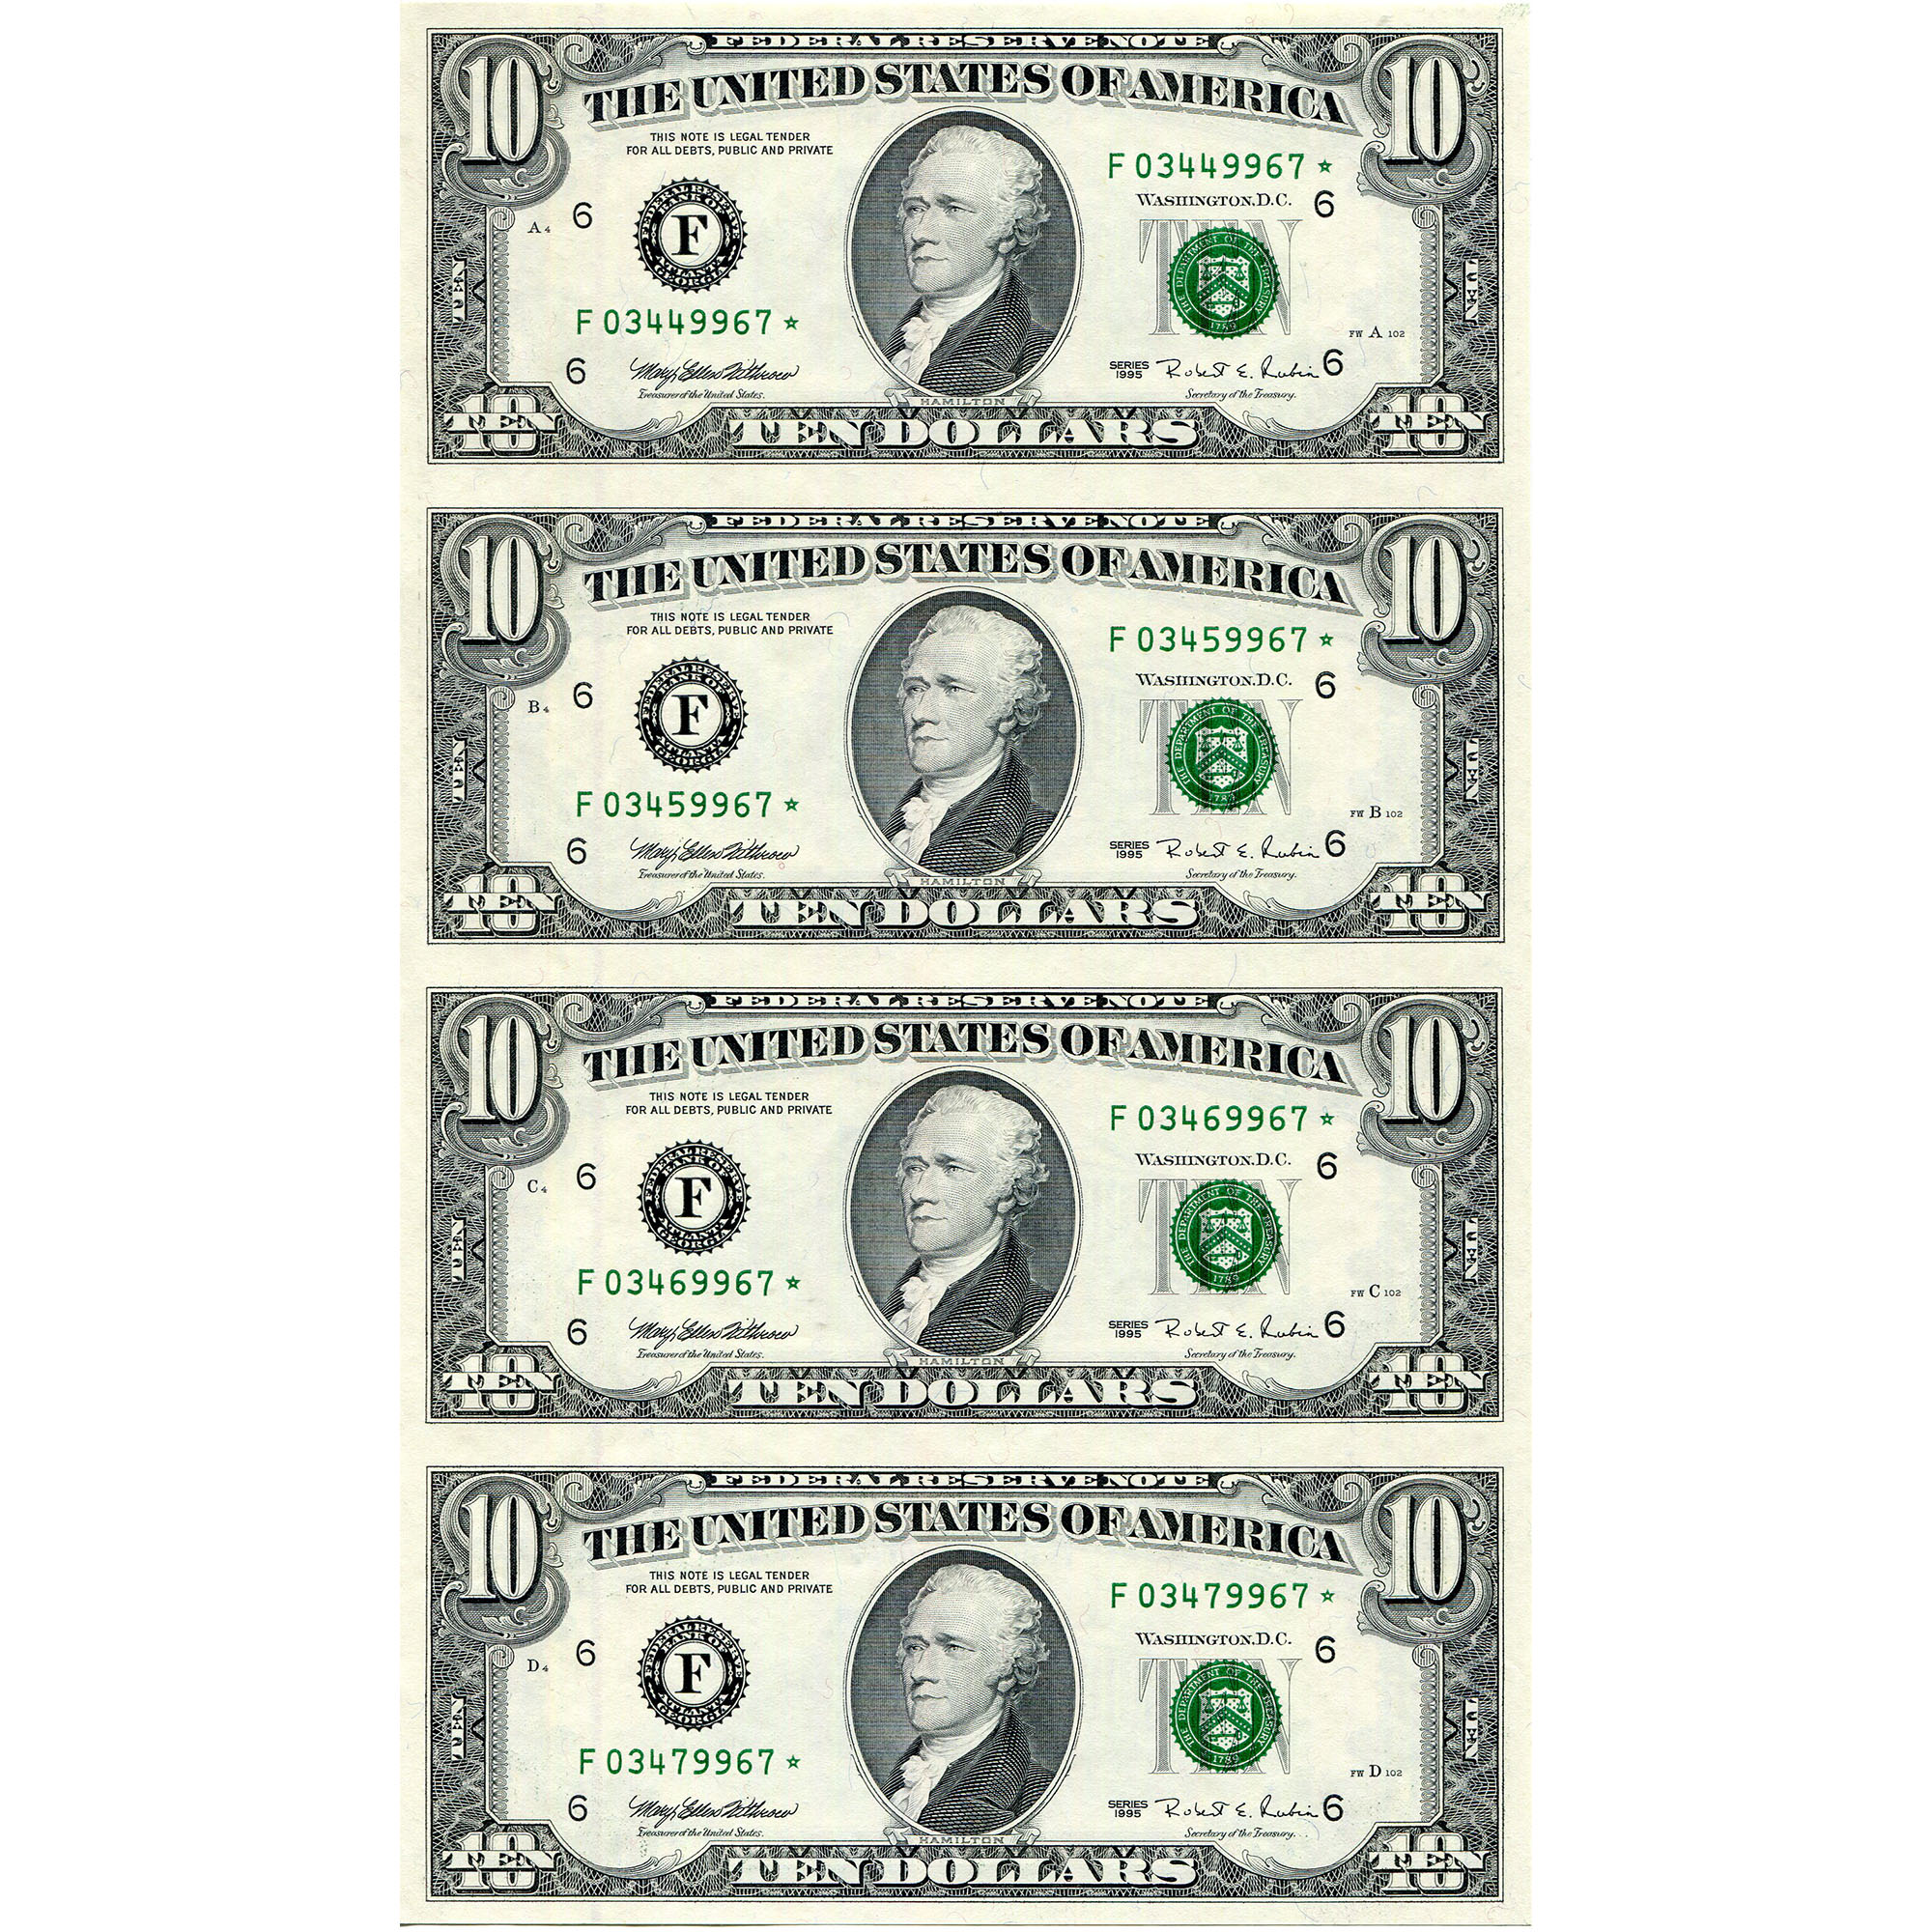 $10 Uncut Currency Sheets